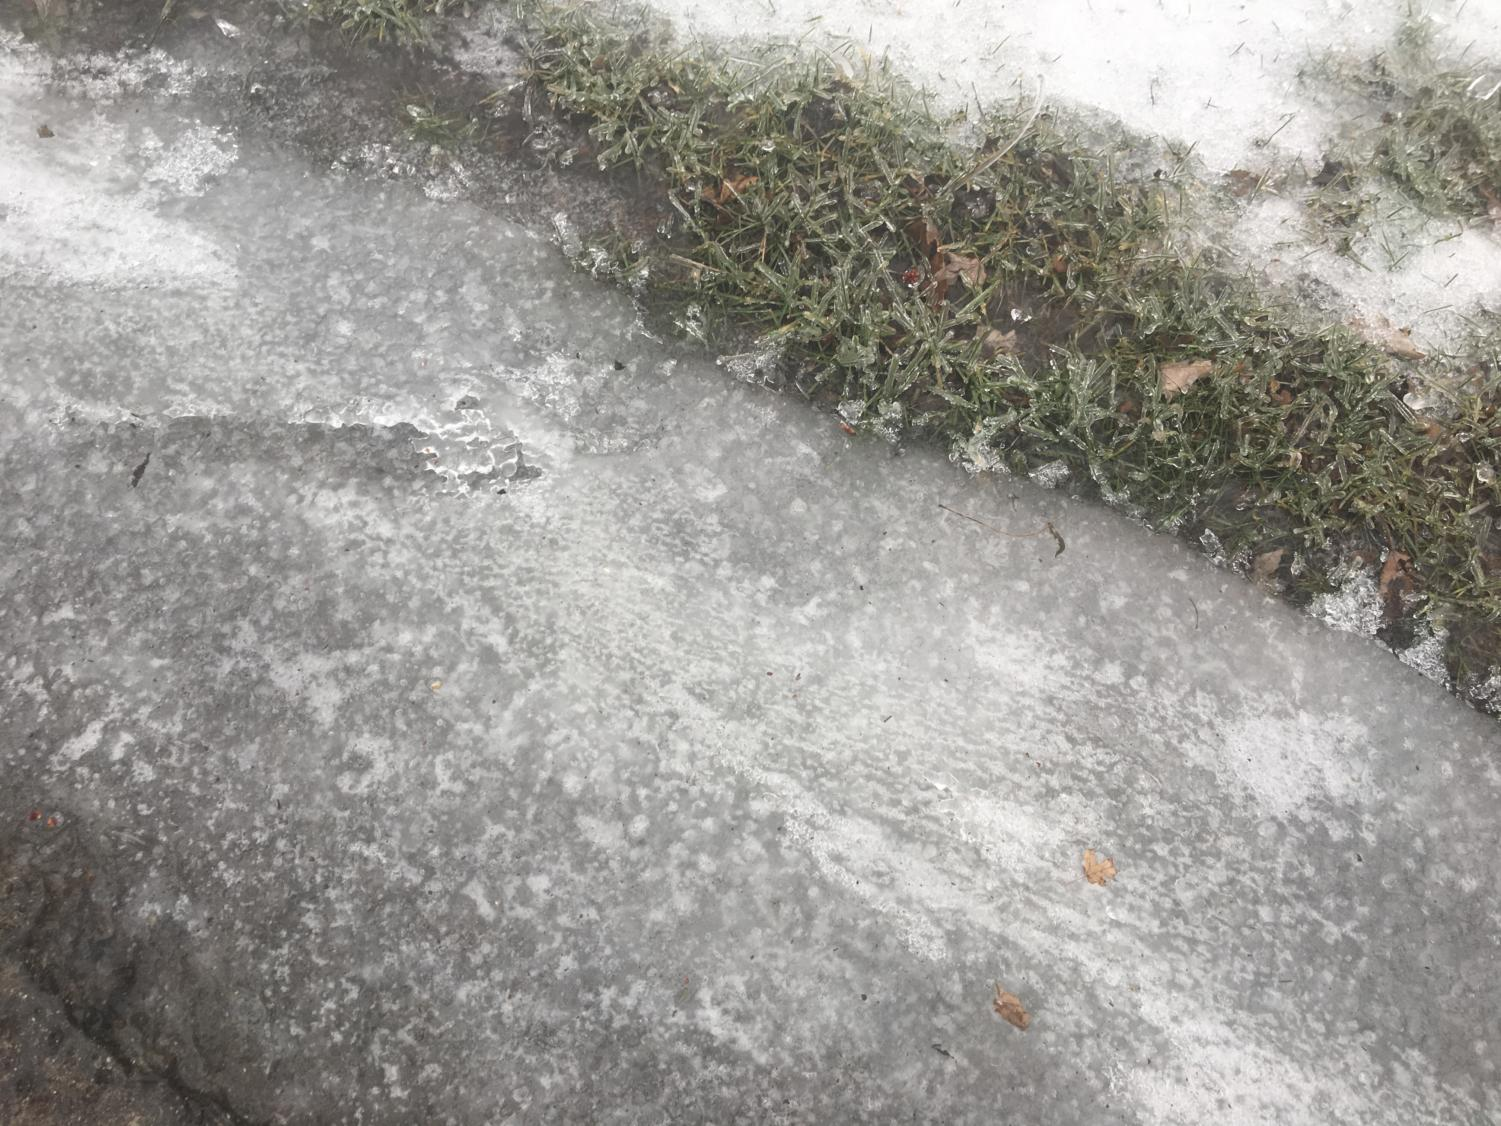 Icy weather conditions can be dangerous for those commuting to and from school.